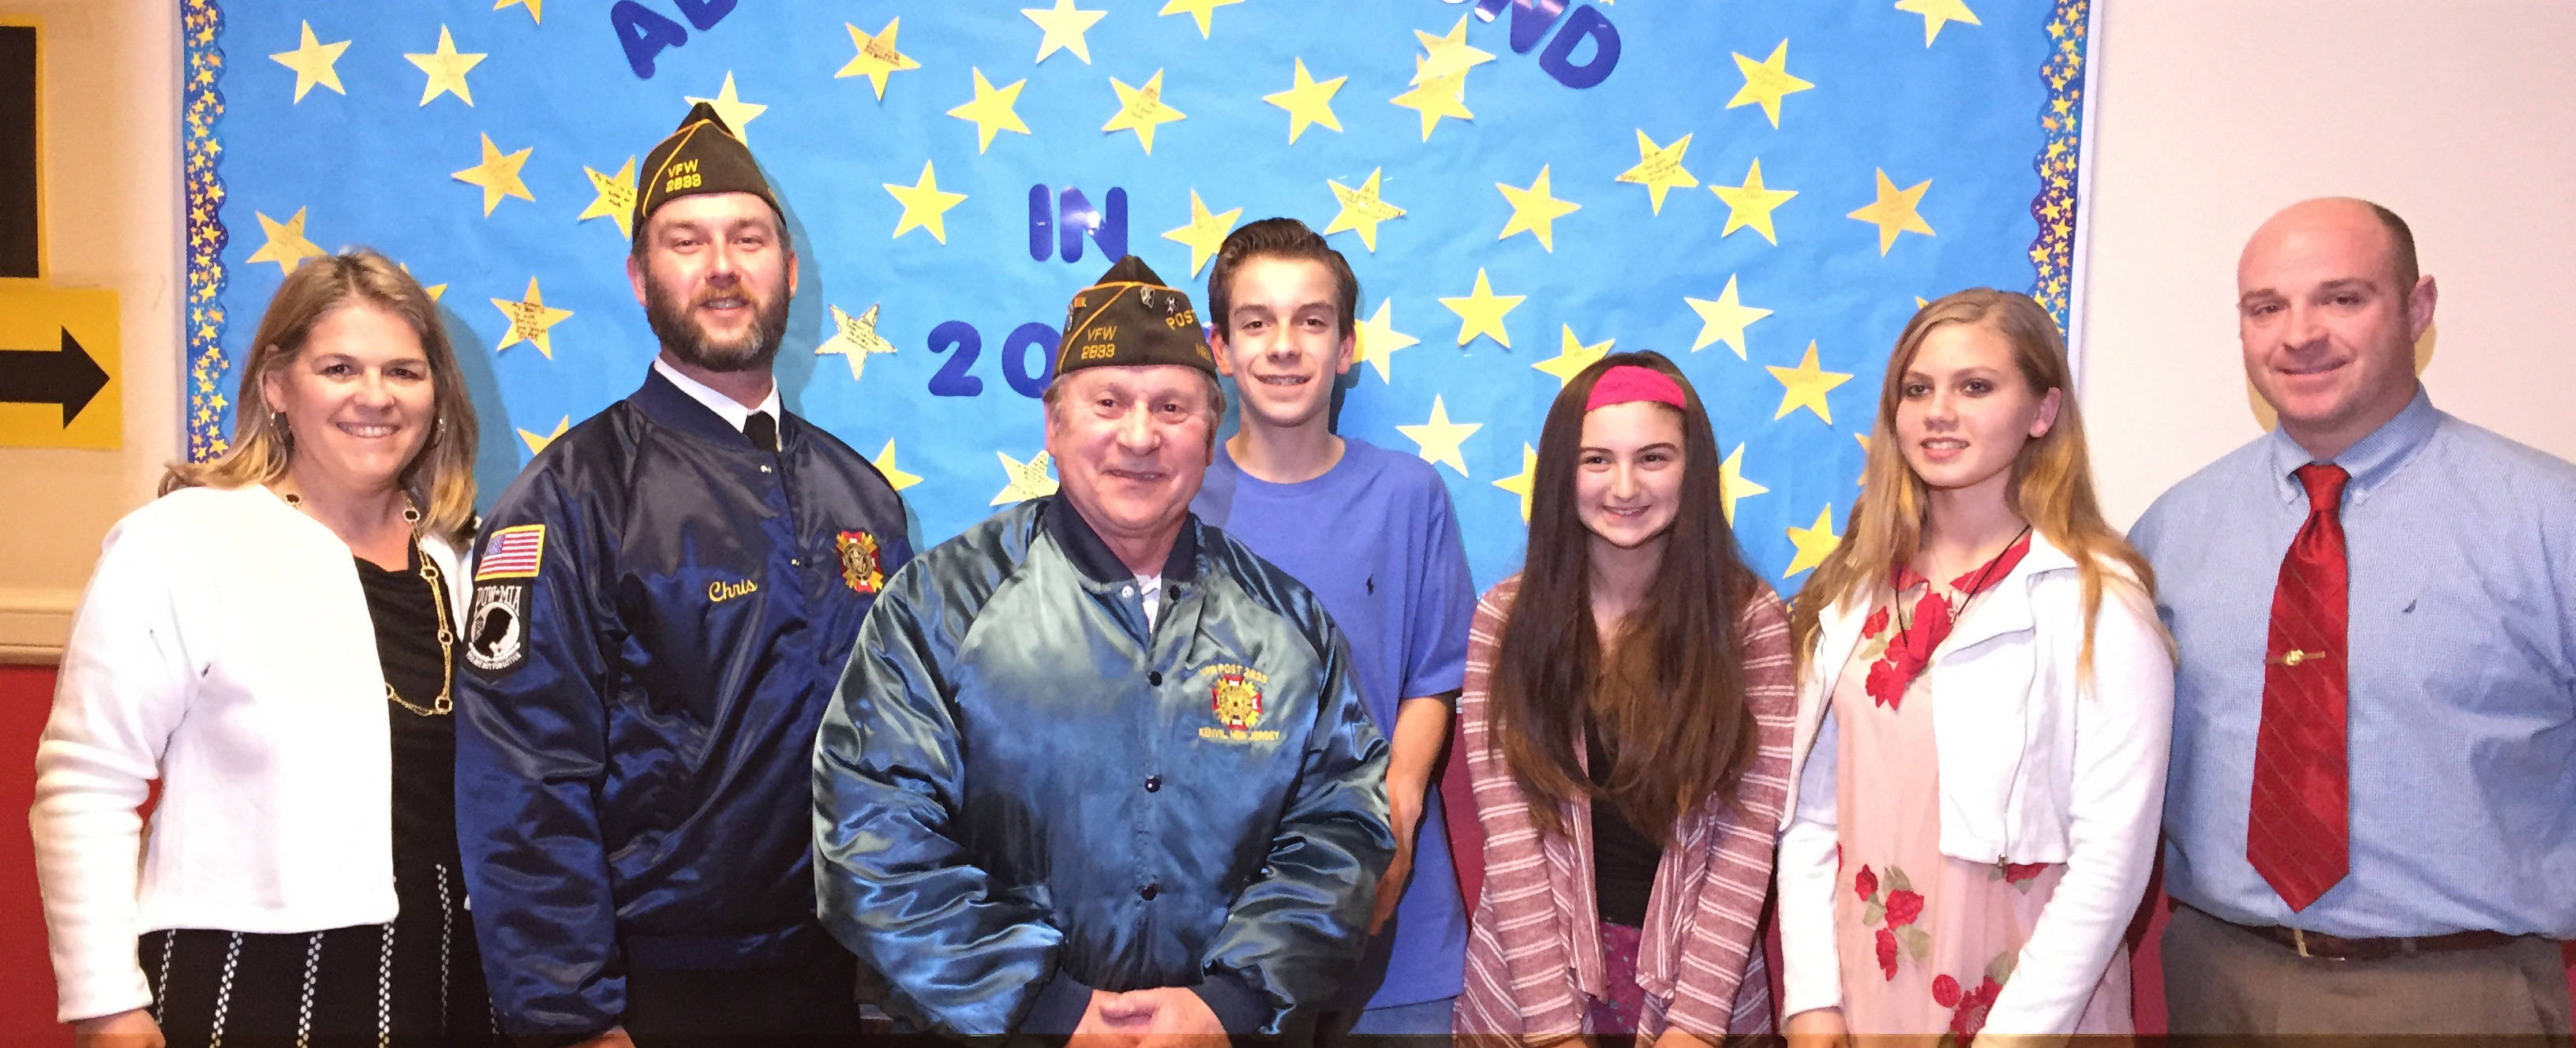 local vfw celebrates patriots pen and voice of democracy essay l r margery richman jeff mcdonald john lehnert thomas schulz farina emma wilk and principal dominick miller credits roxbury township public